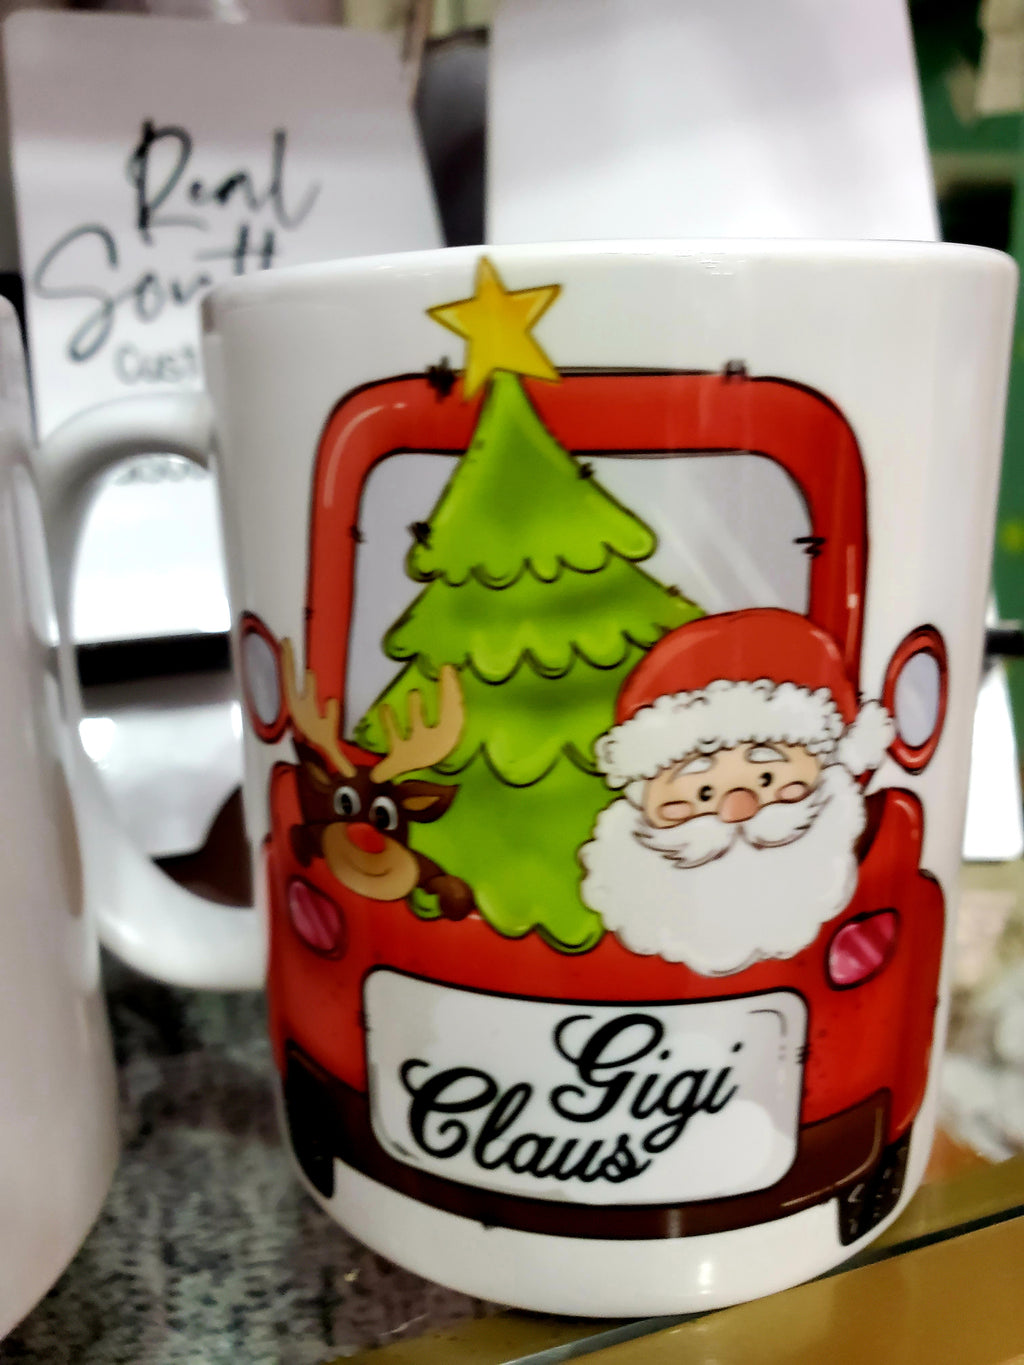 Gigi Claus ceramic mug